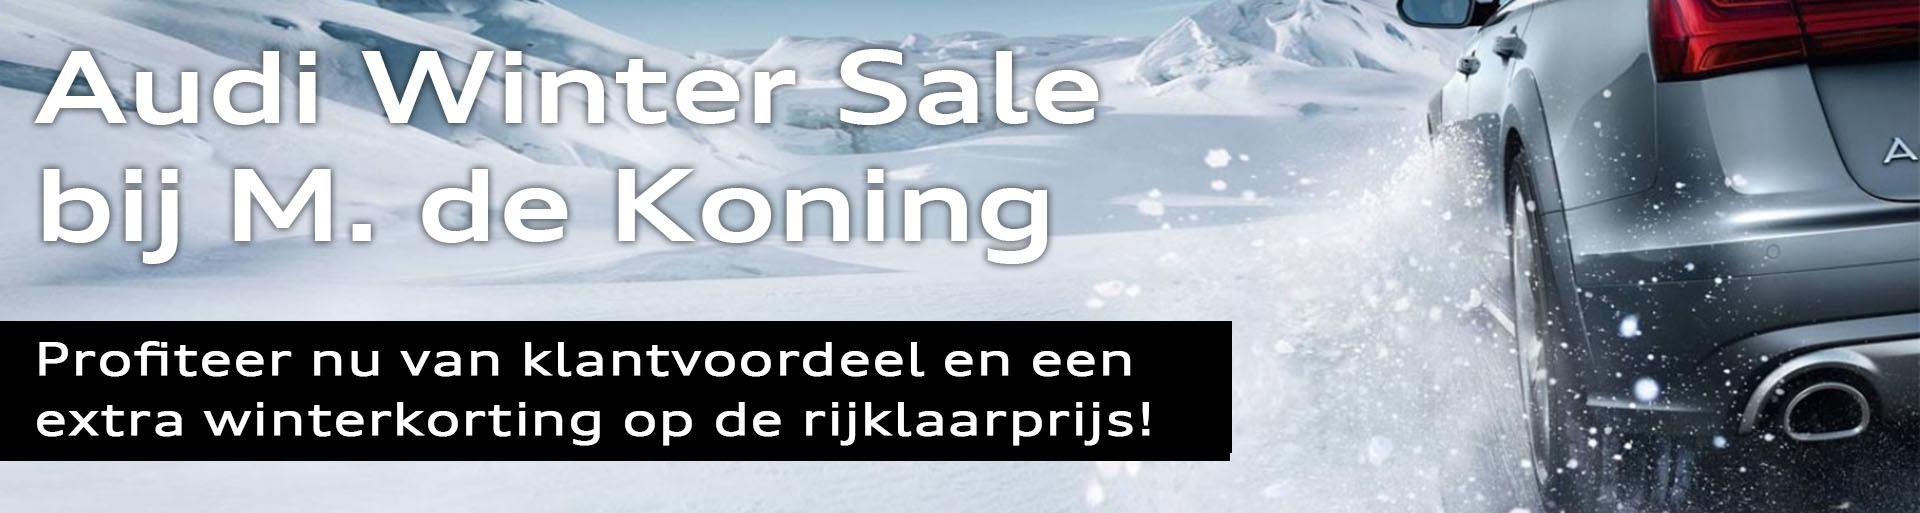 Audi winter sale